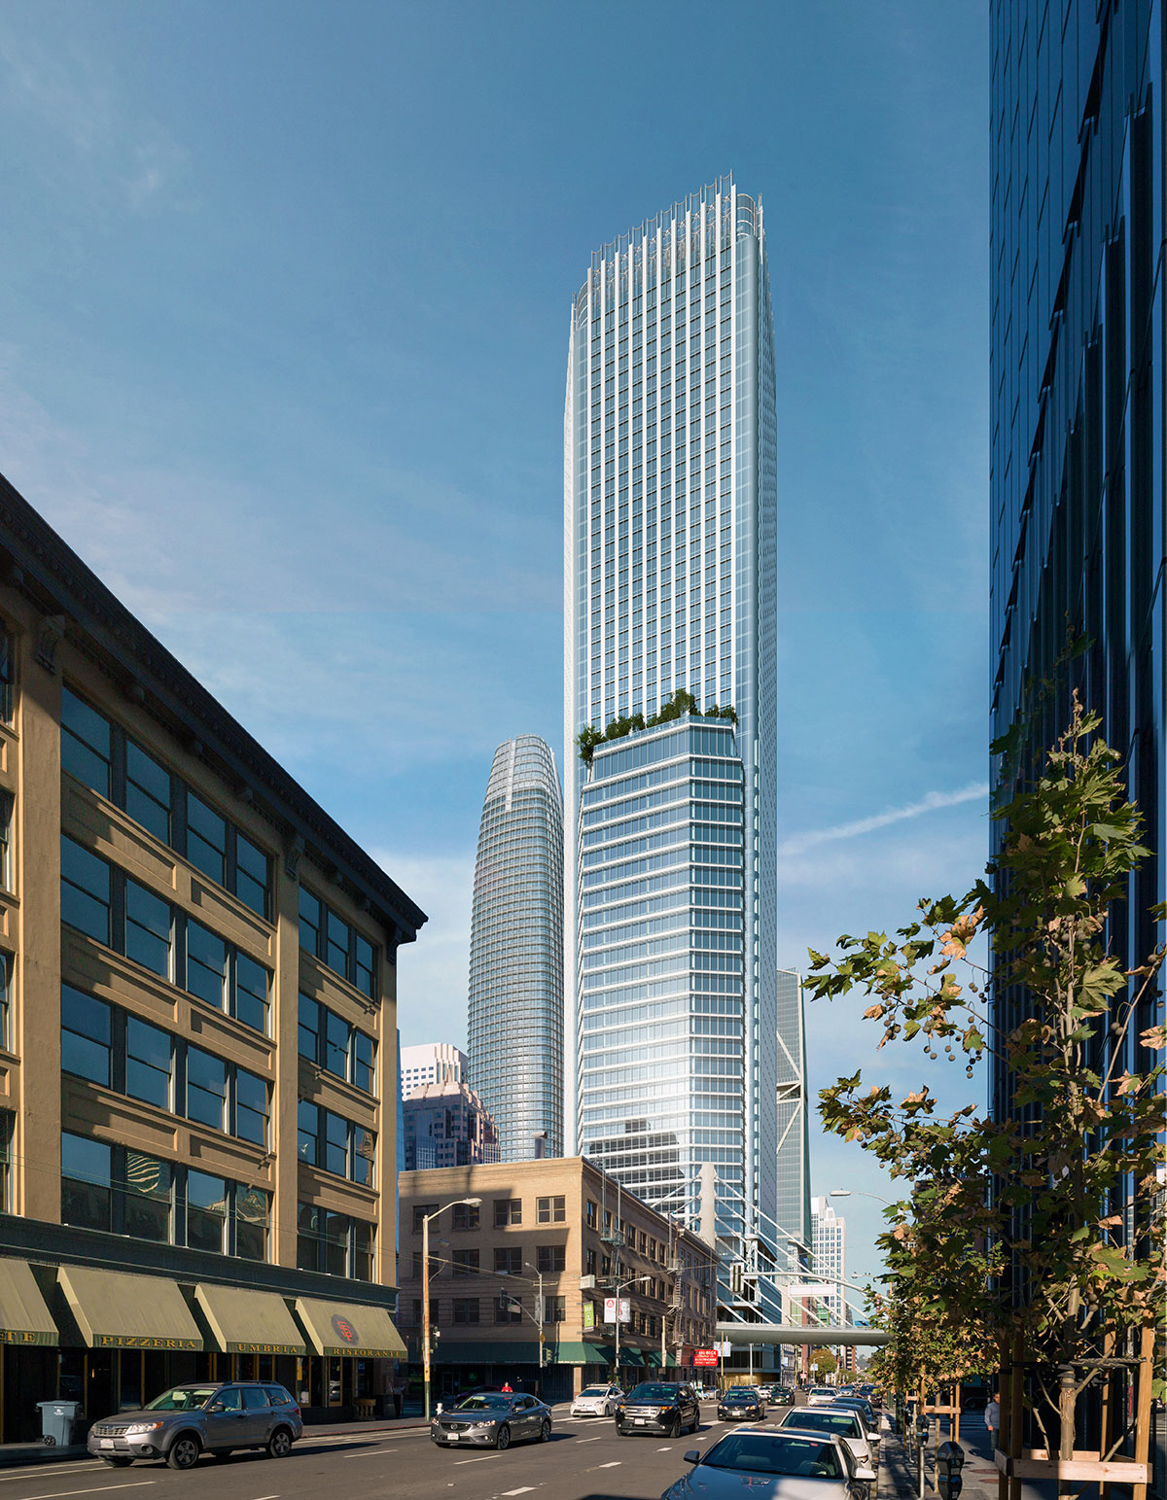 550 Howard Street:Parcel F Architectural design, rendering by SteelBlue